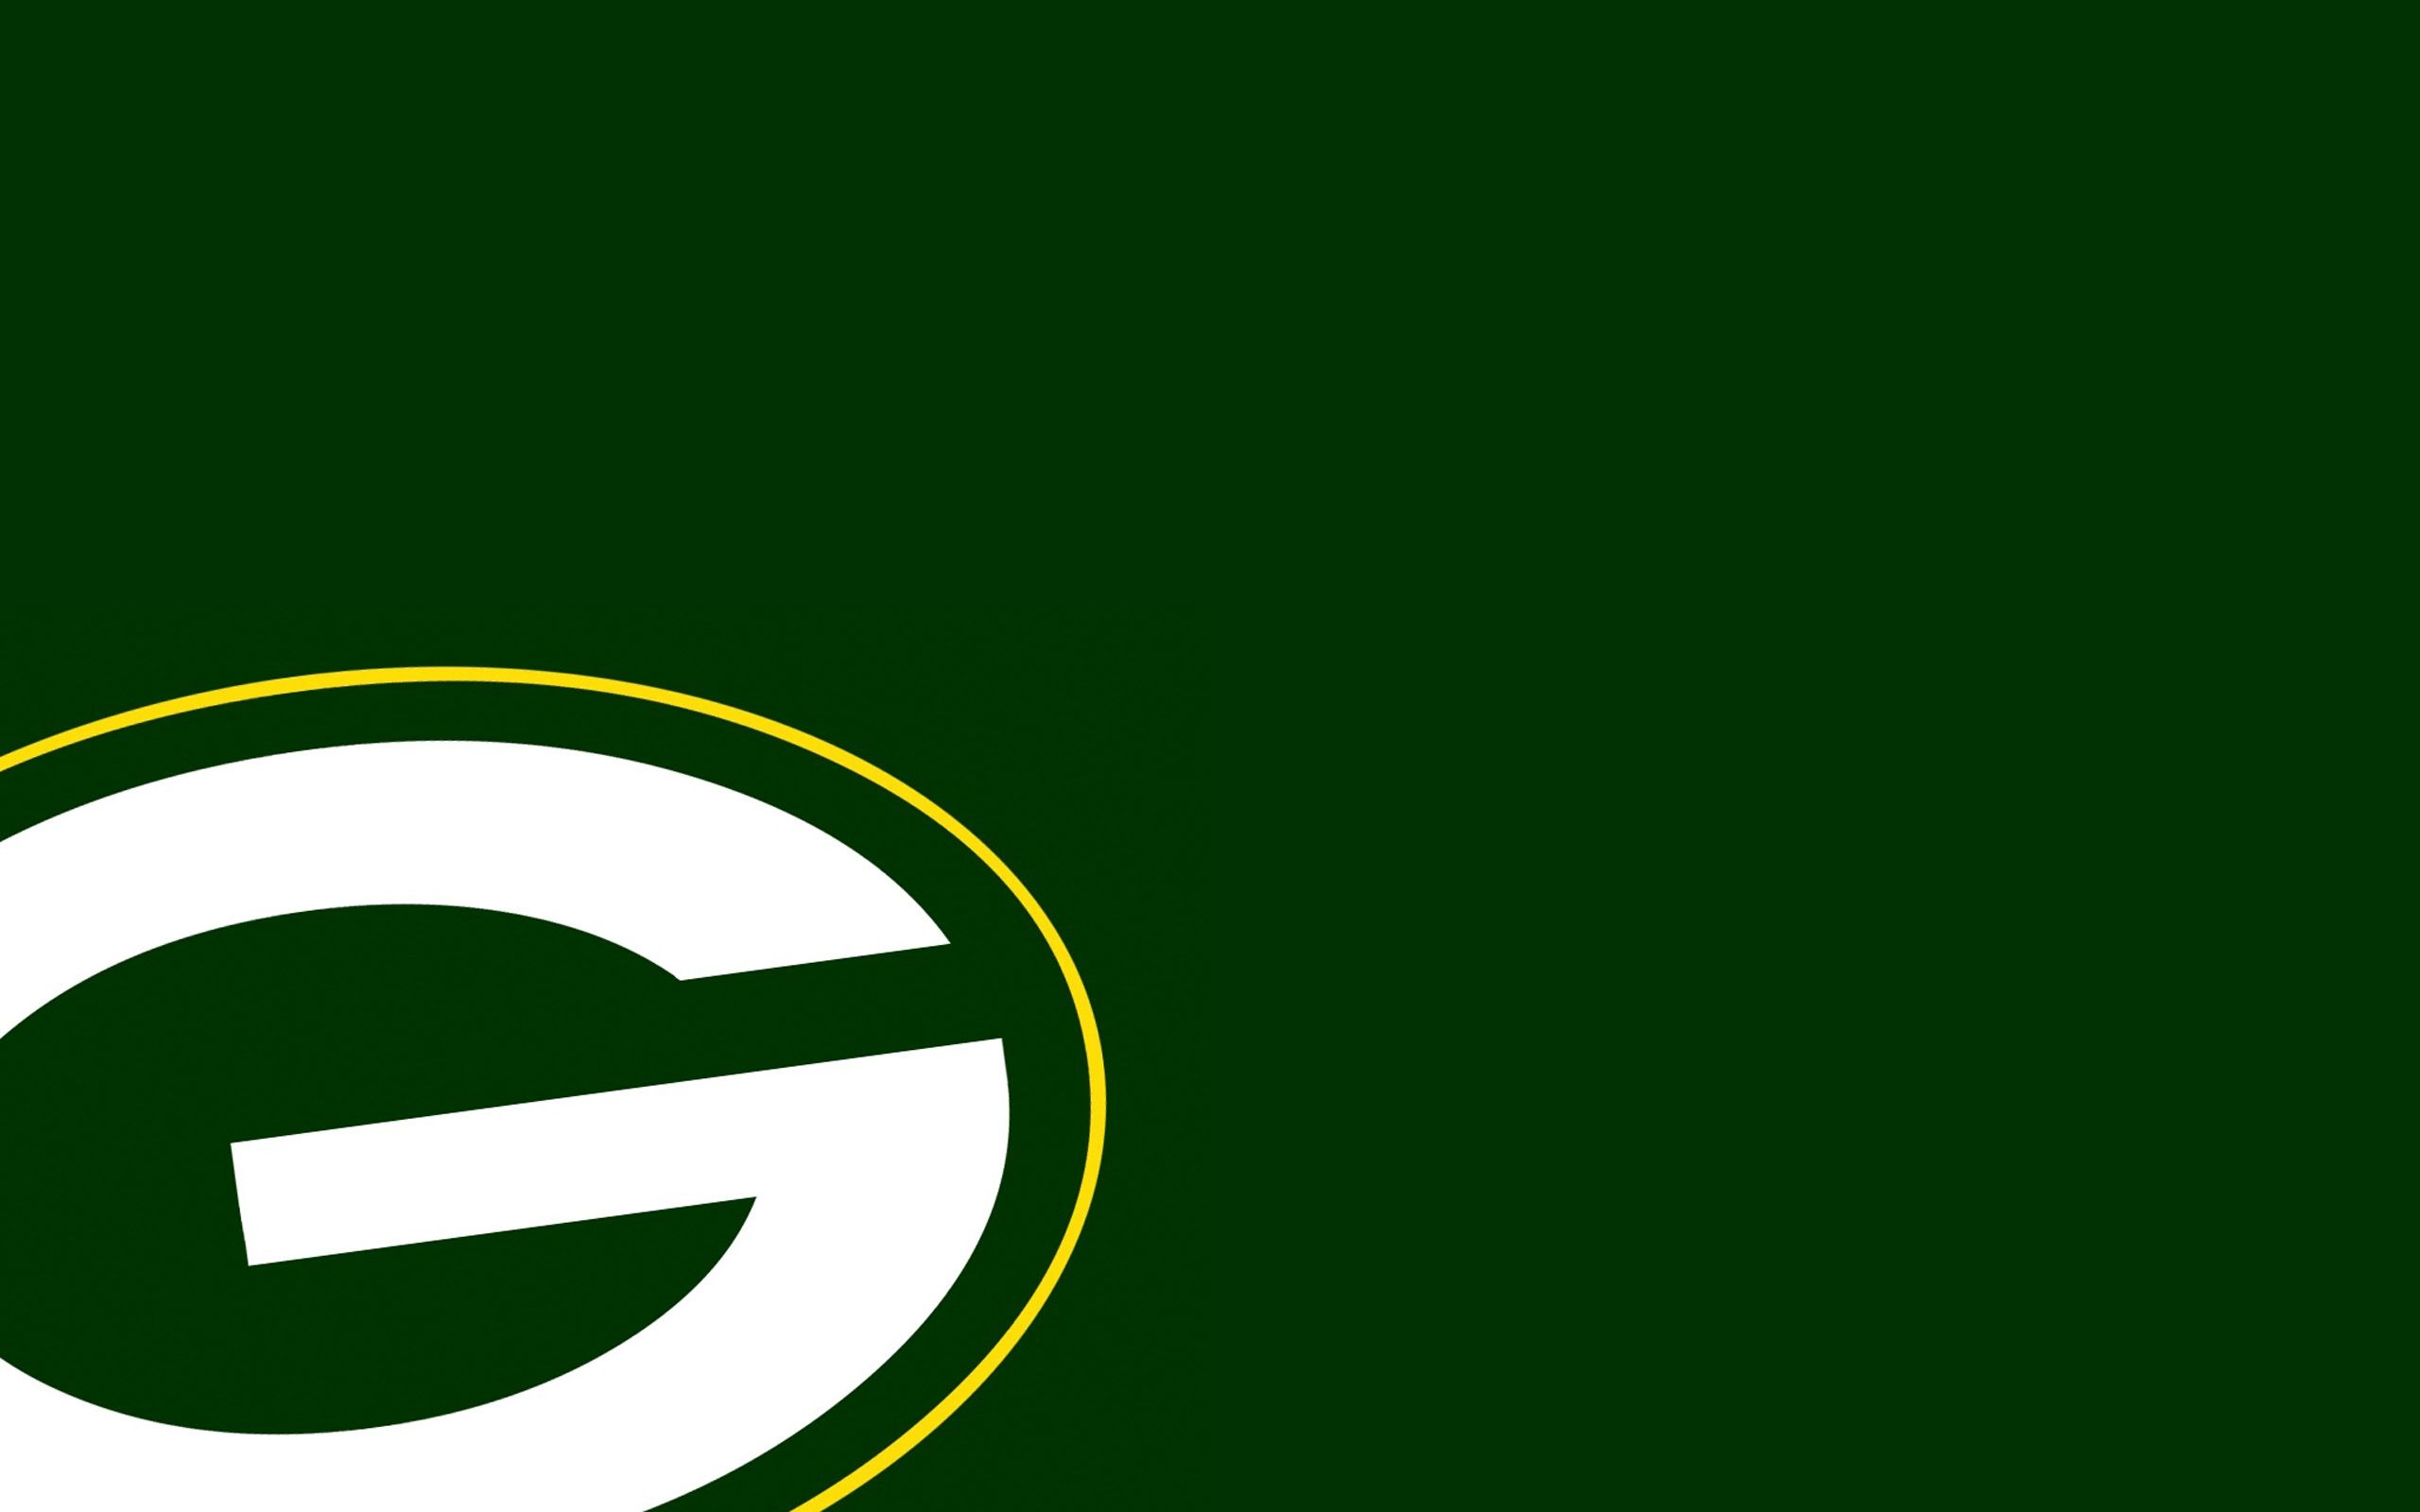 explore green bay packers wallpaper and more